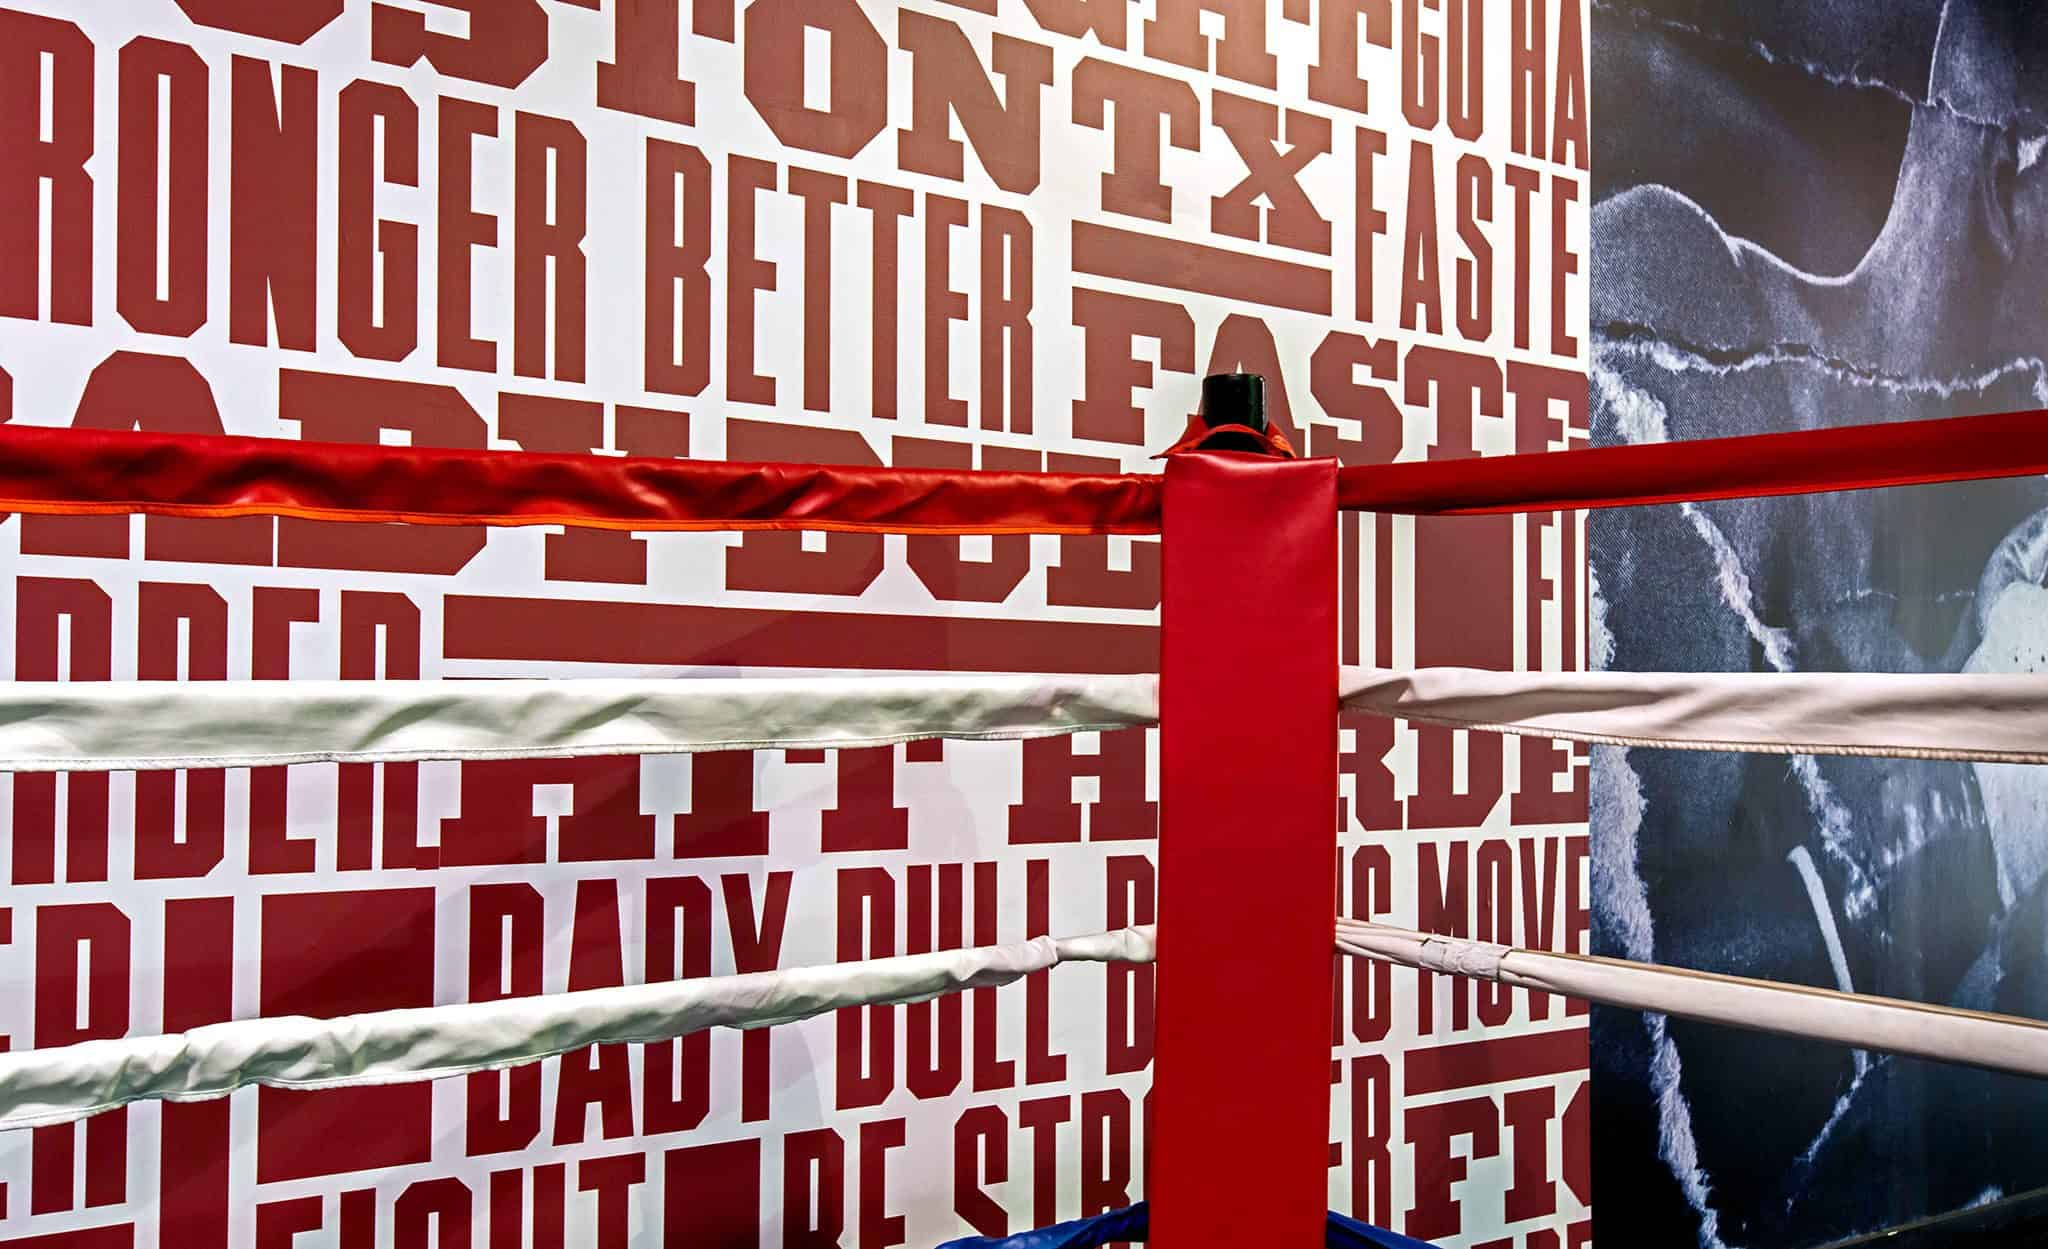 Typographic wall graphics for Baby Bull Boxing | Designed by Field of Study: A branding and graphic design consultancy | Houston TX | Jennifer Blanco & John Earles